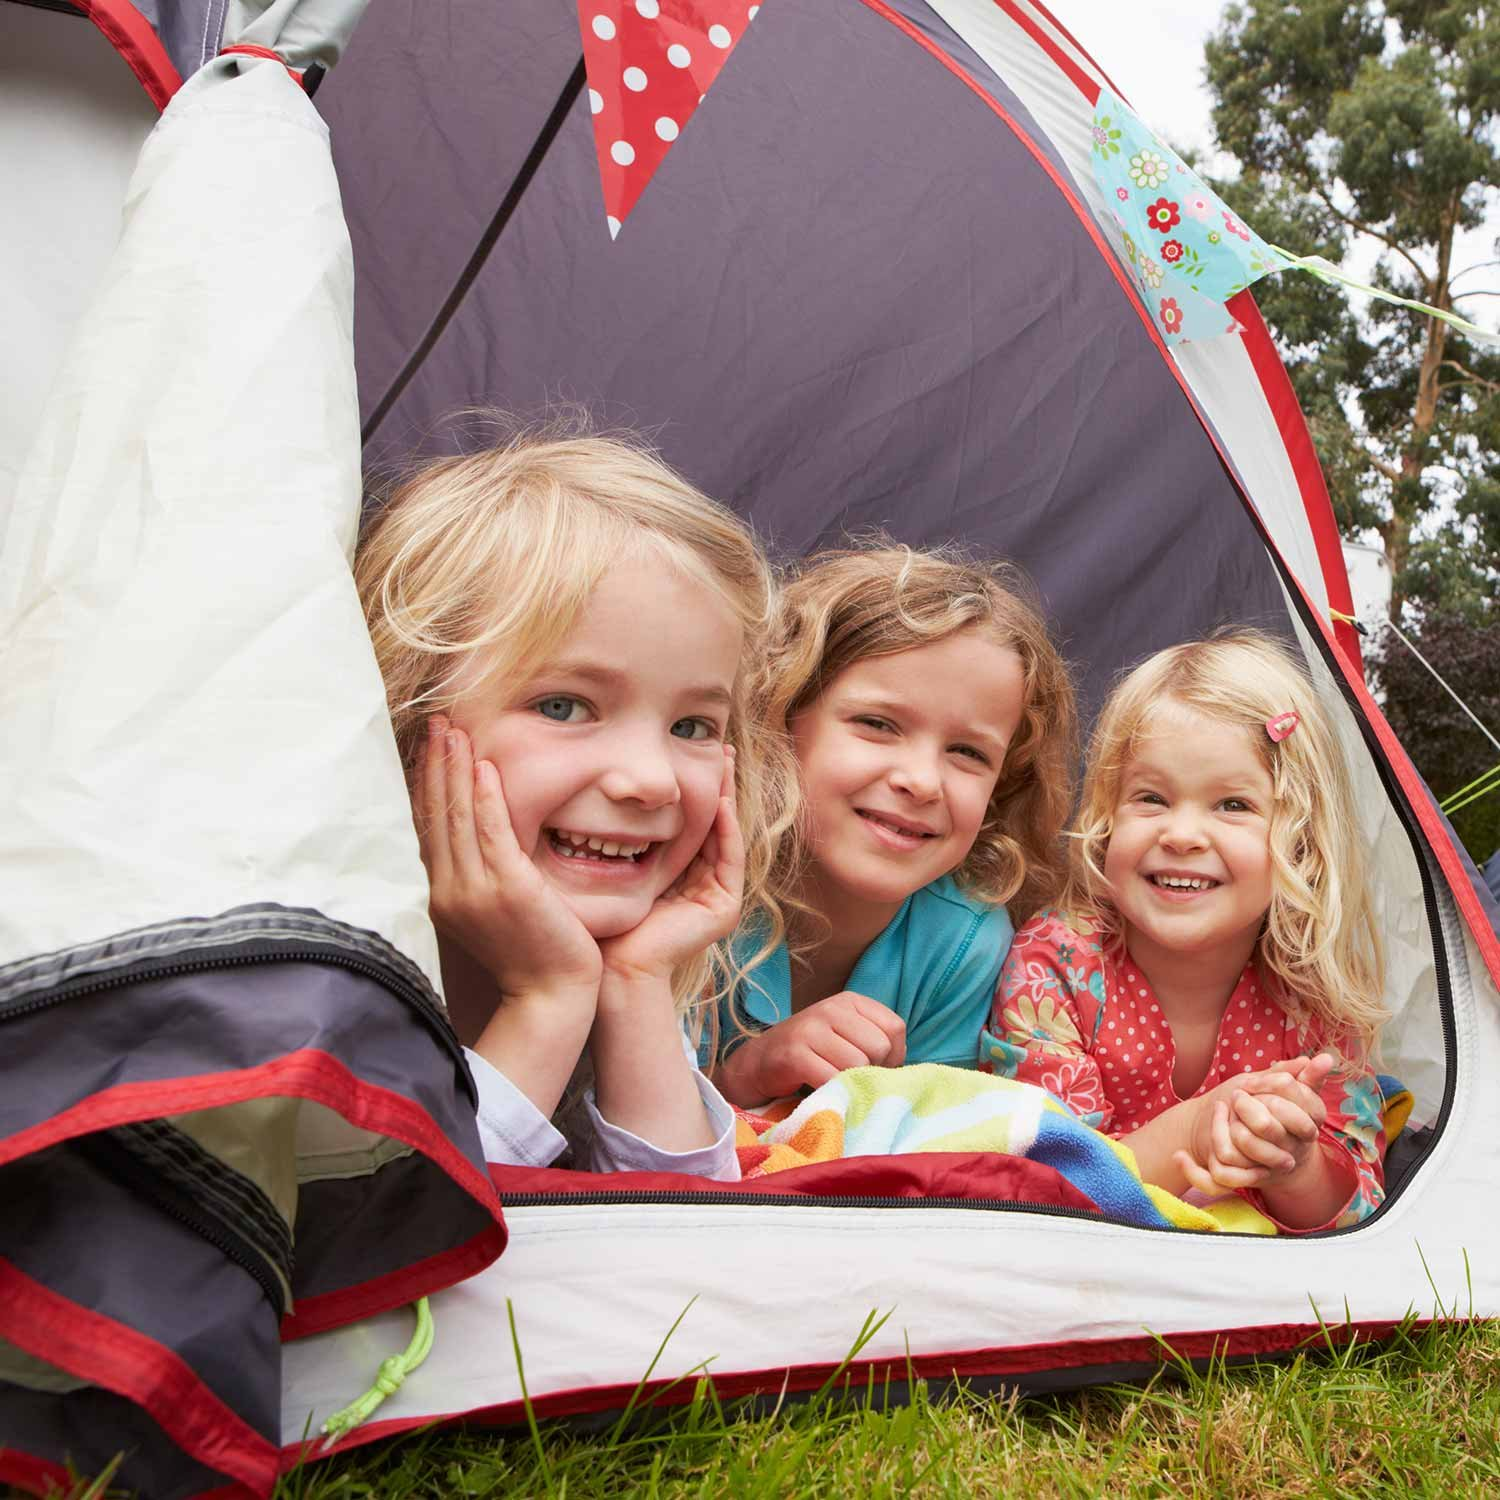 young girls smiling camping in a tent